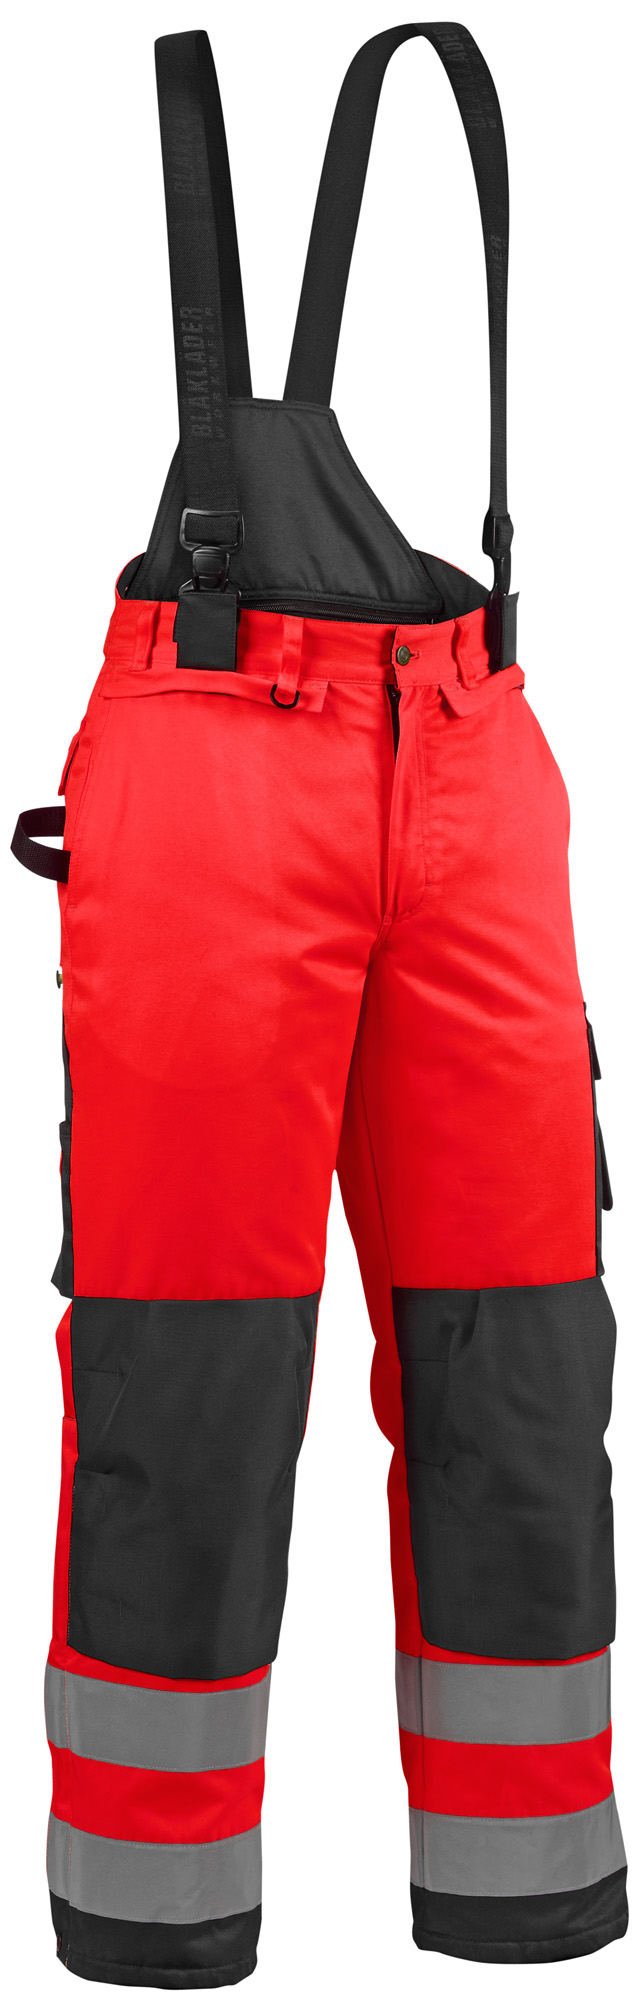 Blaklader Hi Vis Winter Trousers with Kneepad Pockets(Polyester)-18851977